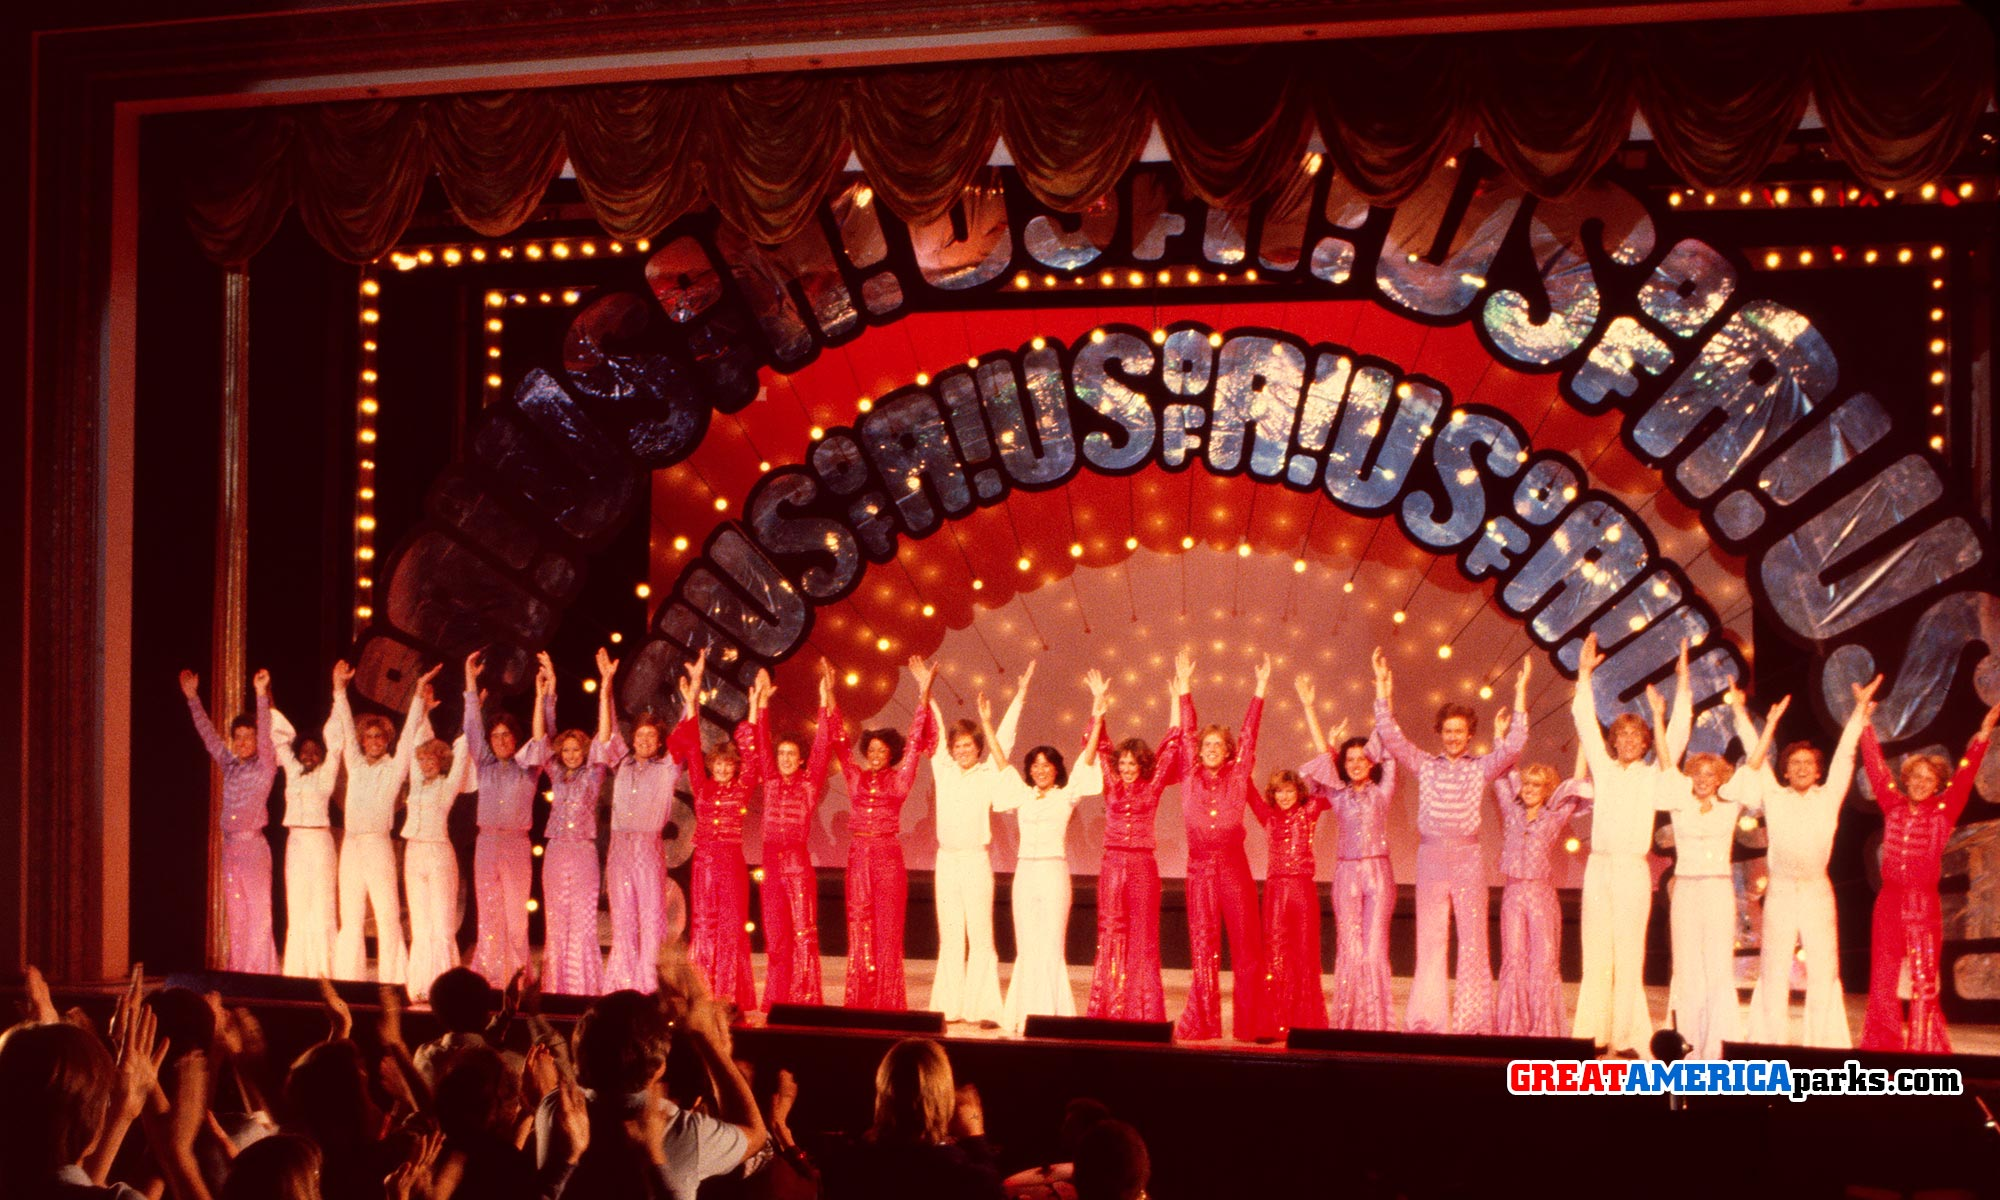 Marriott's Great America shows: Music! America! 1976